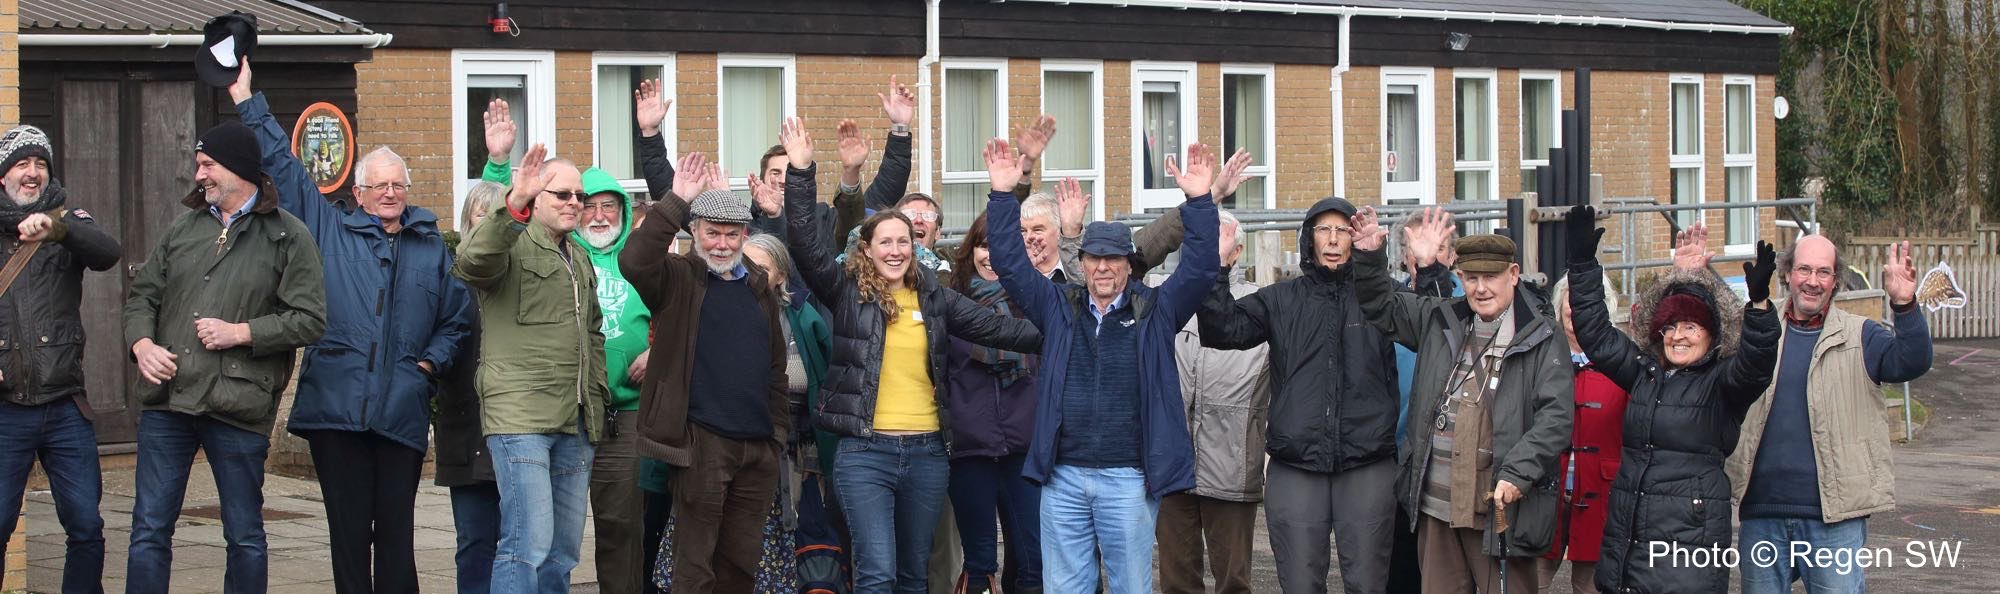 Members waving in front of Greenford School